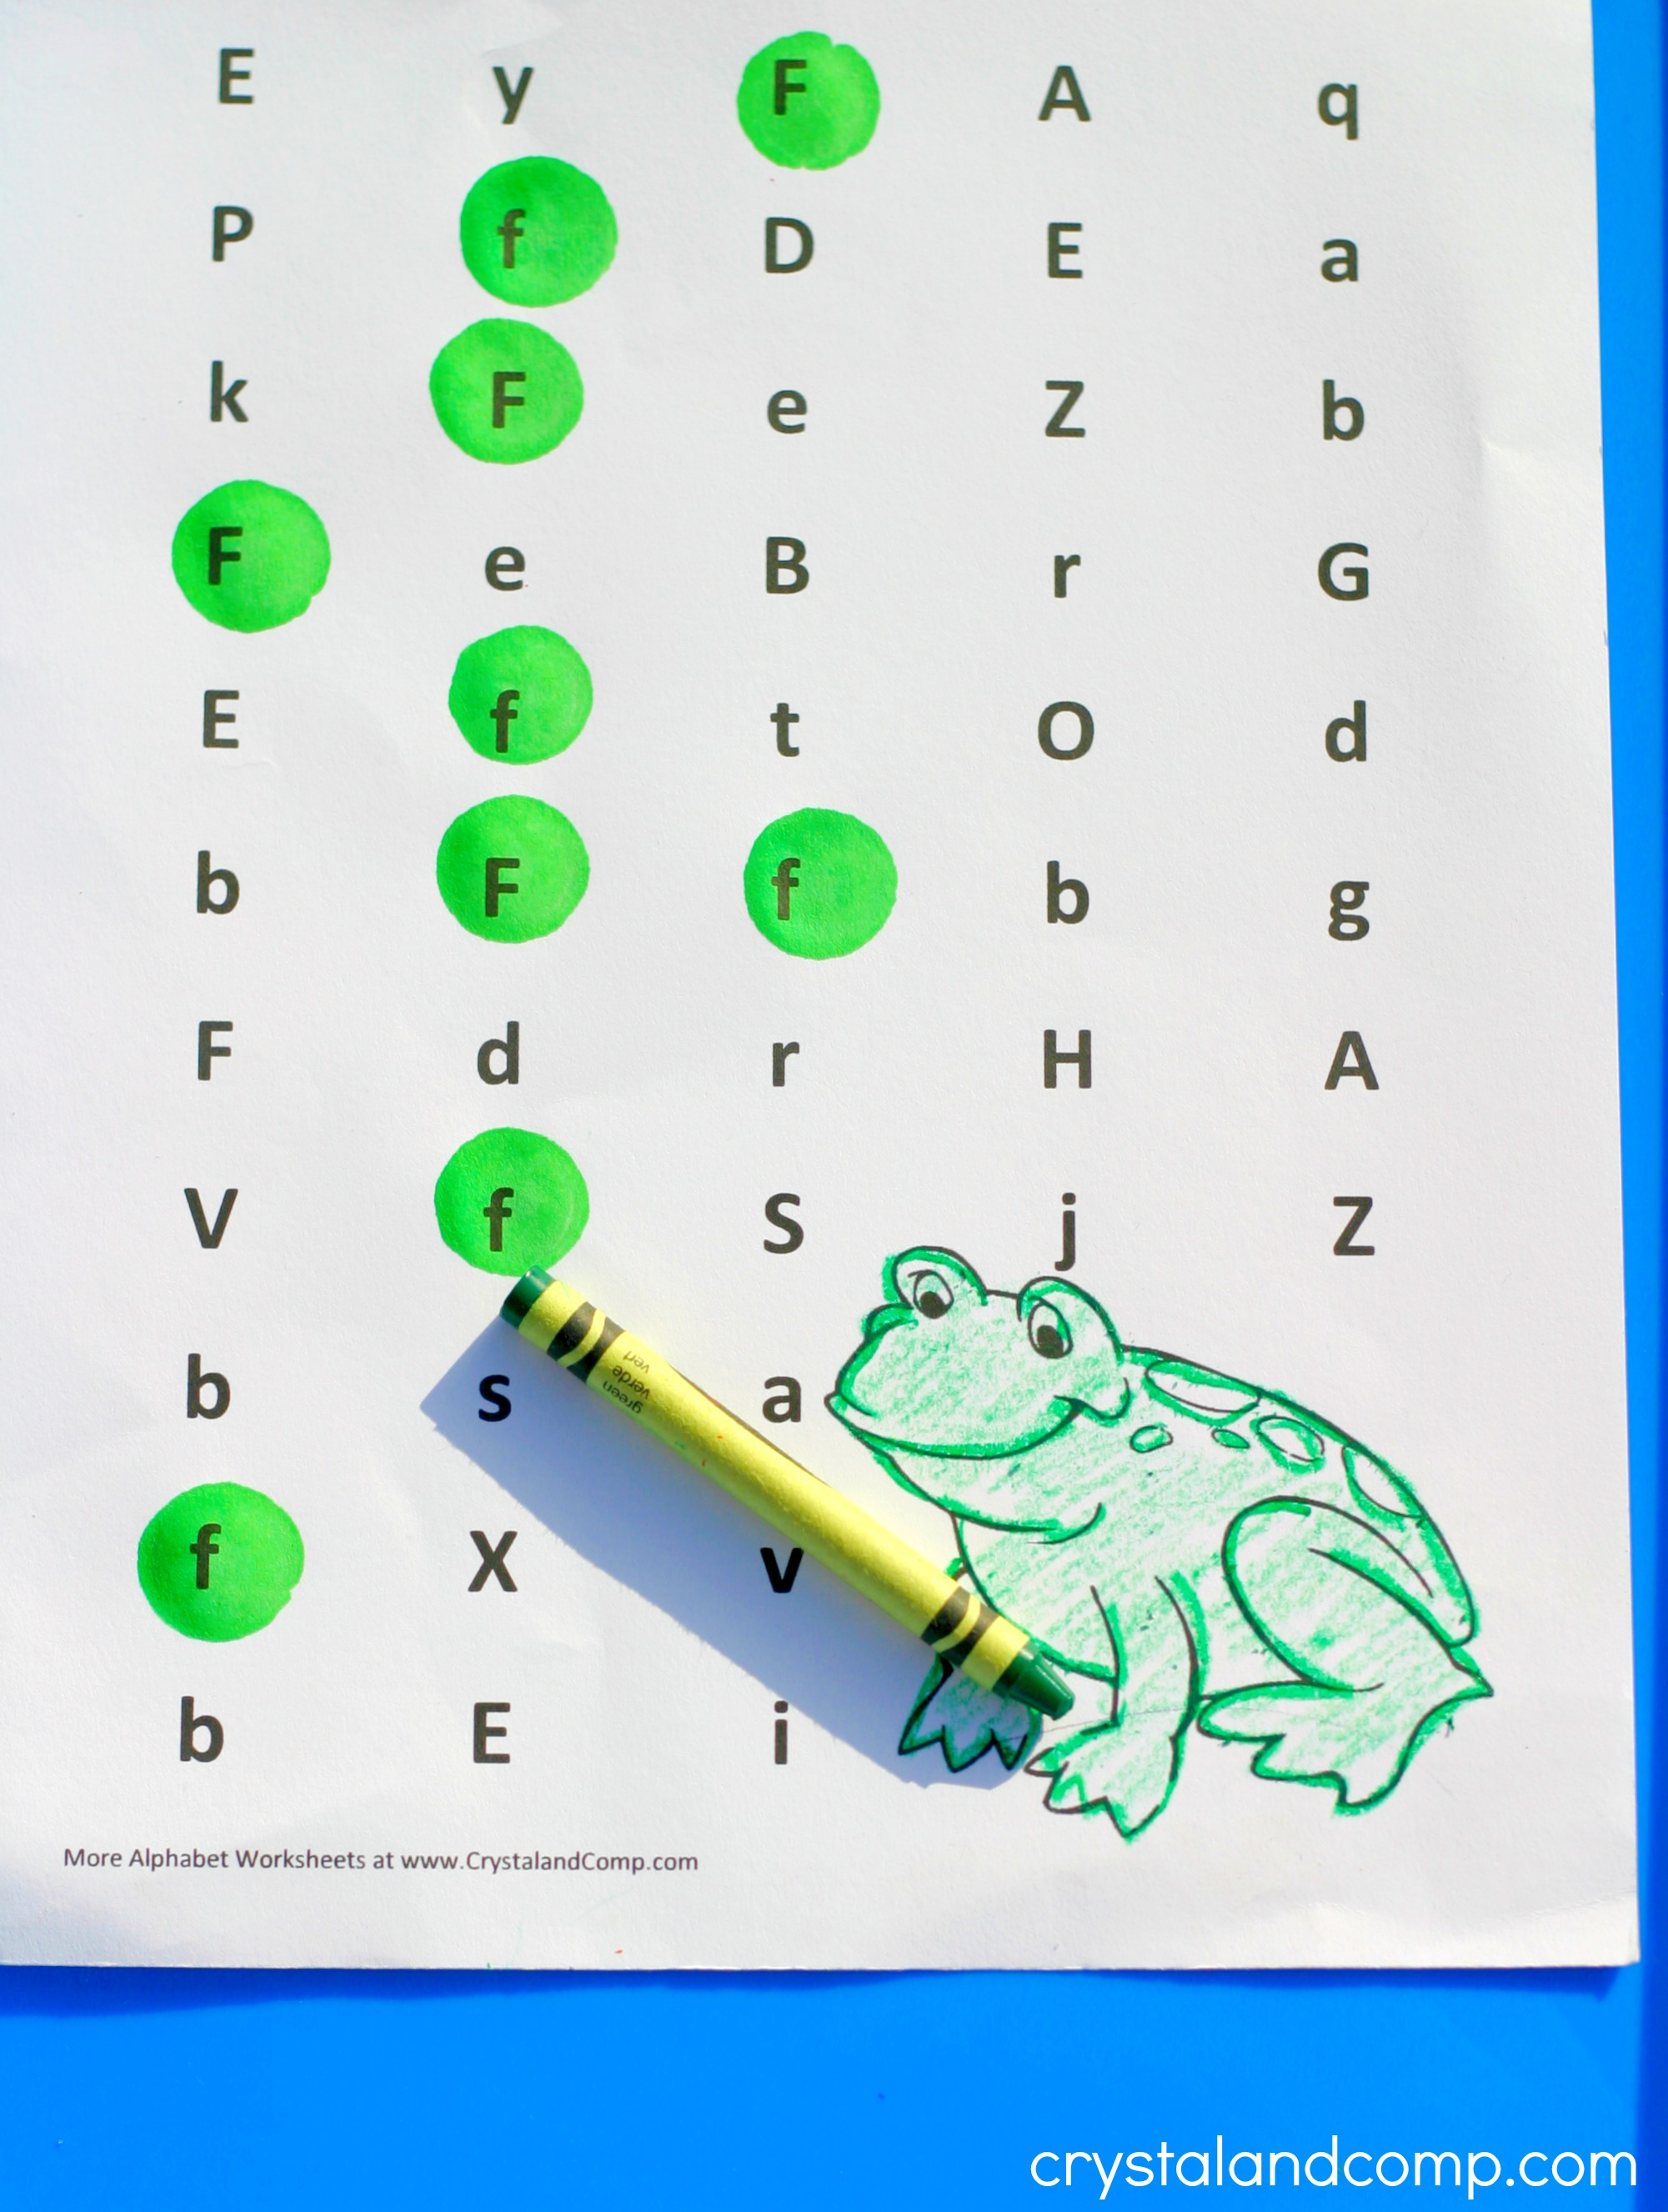 Preschool Letter Worksheets: F is for Frog